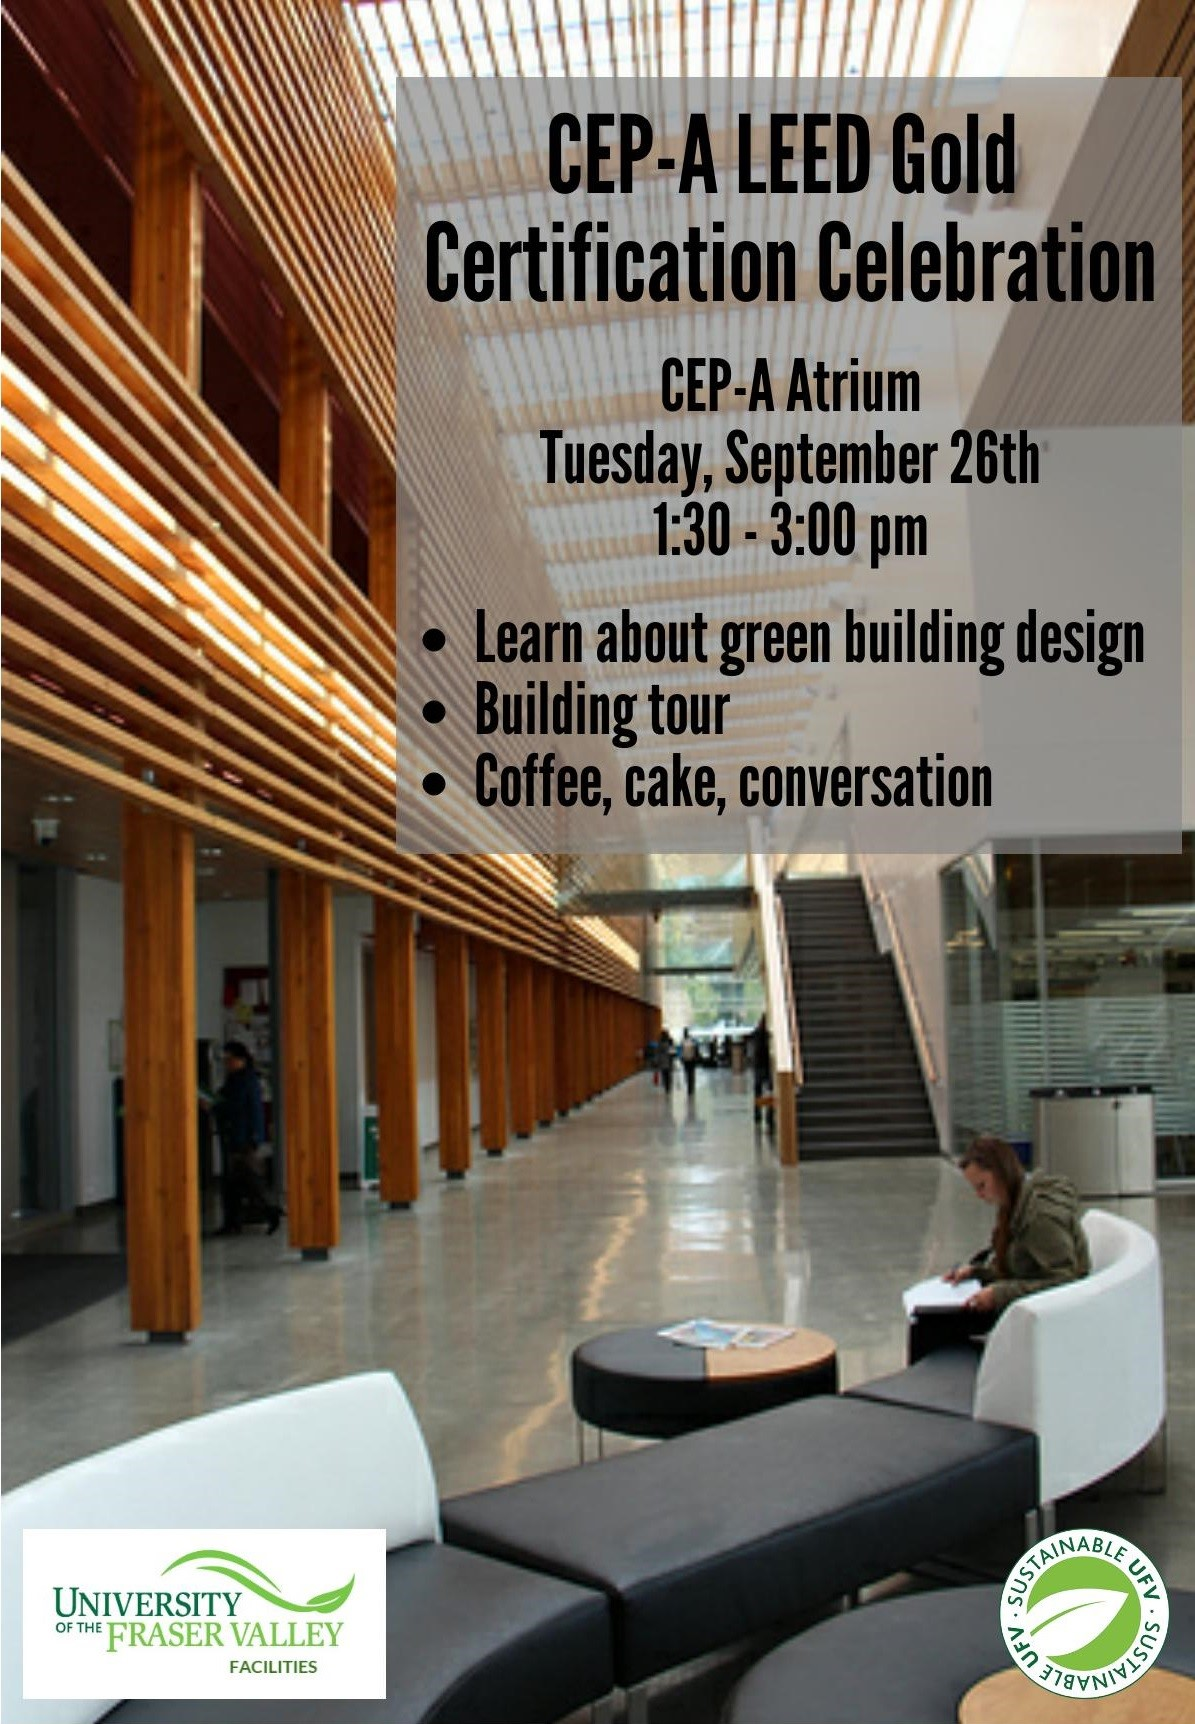 Celebration Of Leed Gold Certification Of Cep A Ufv Events